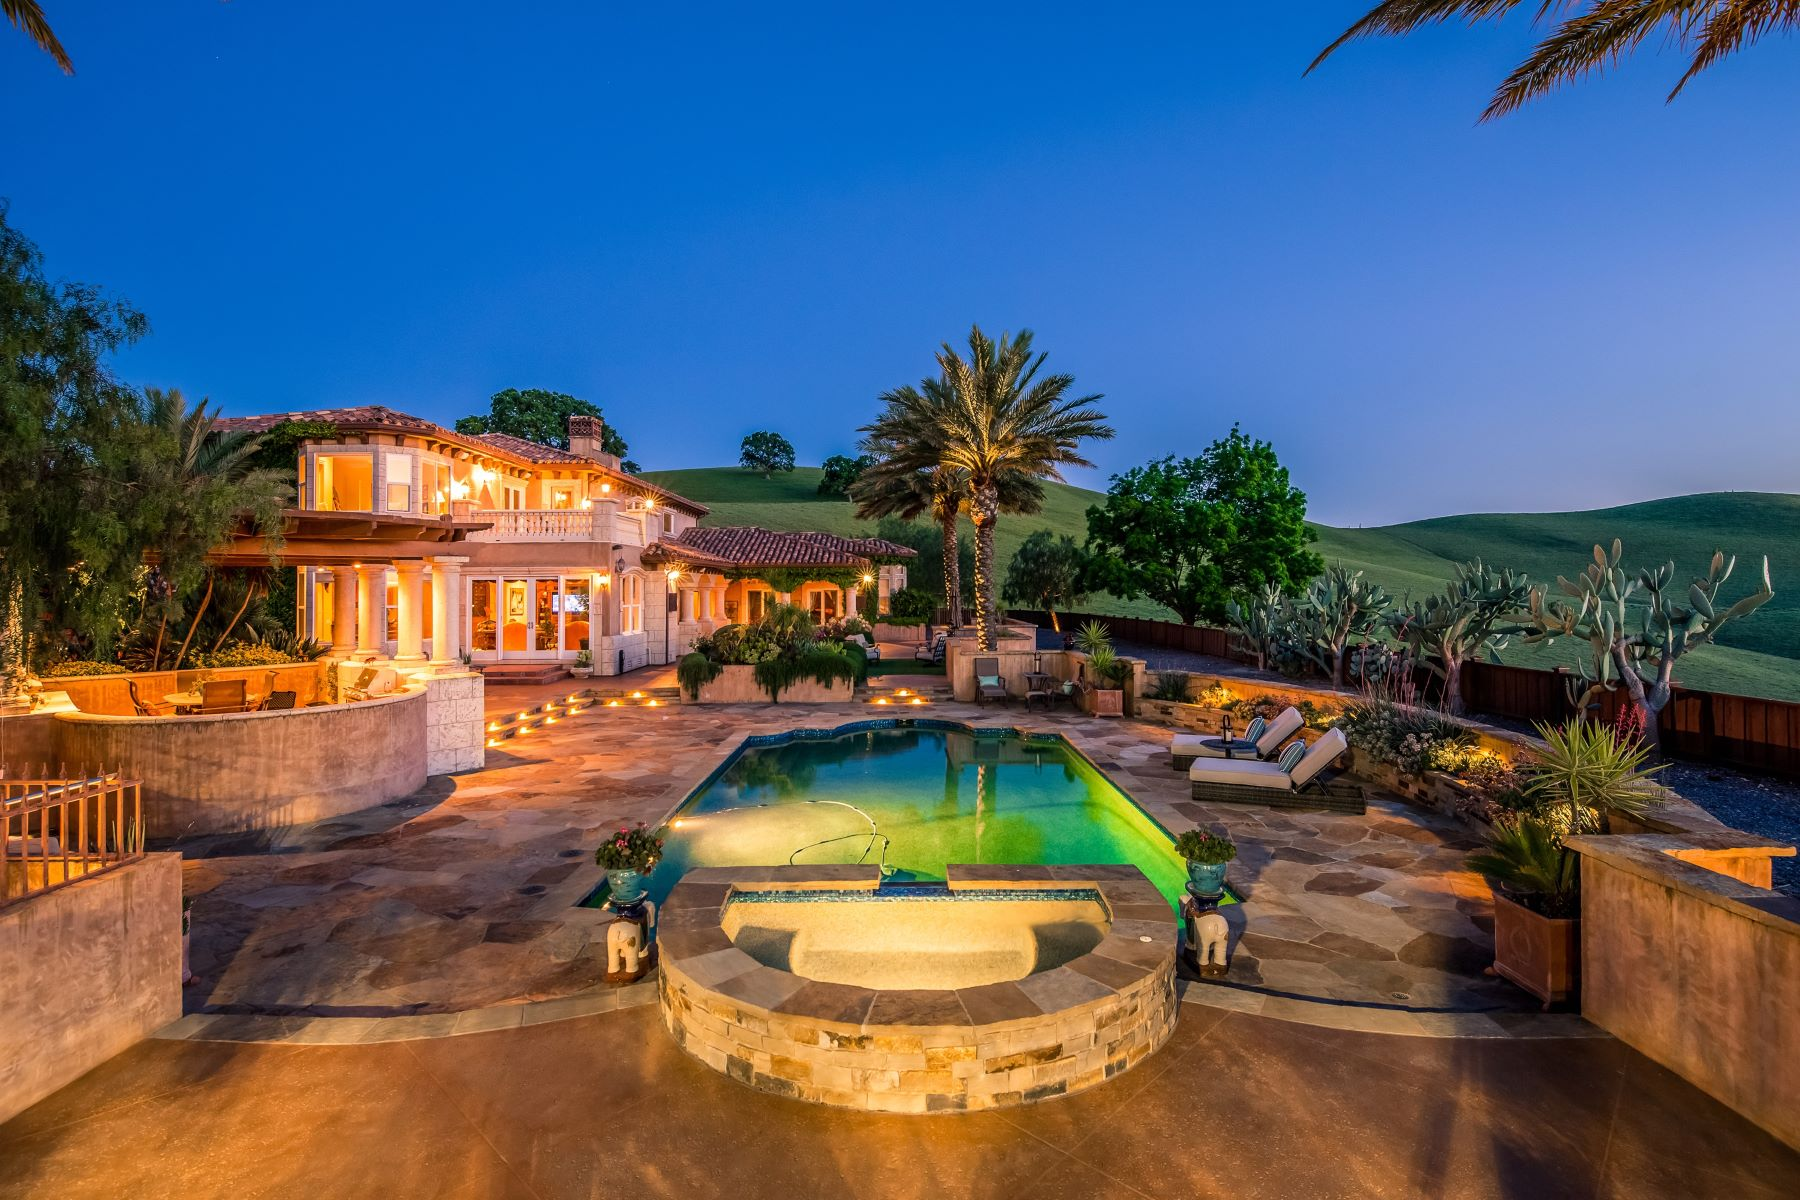 Single Family Homes for Sale at Your Own Personal Paradise 7210 Johnston Road Danville, California 94588 United States